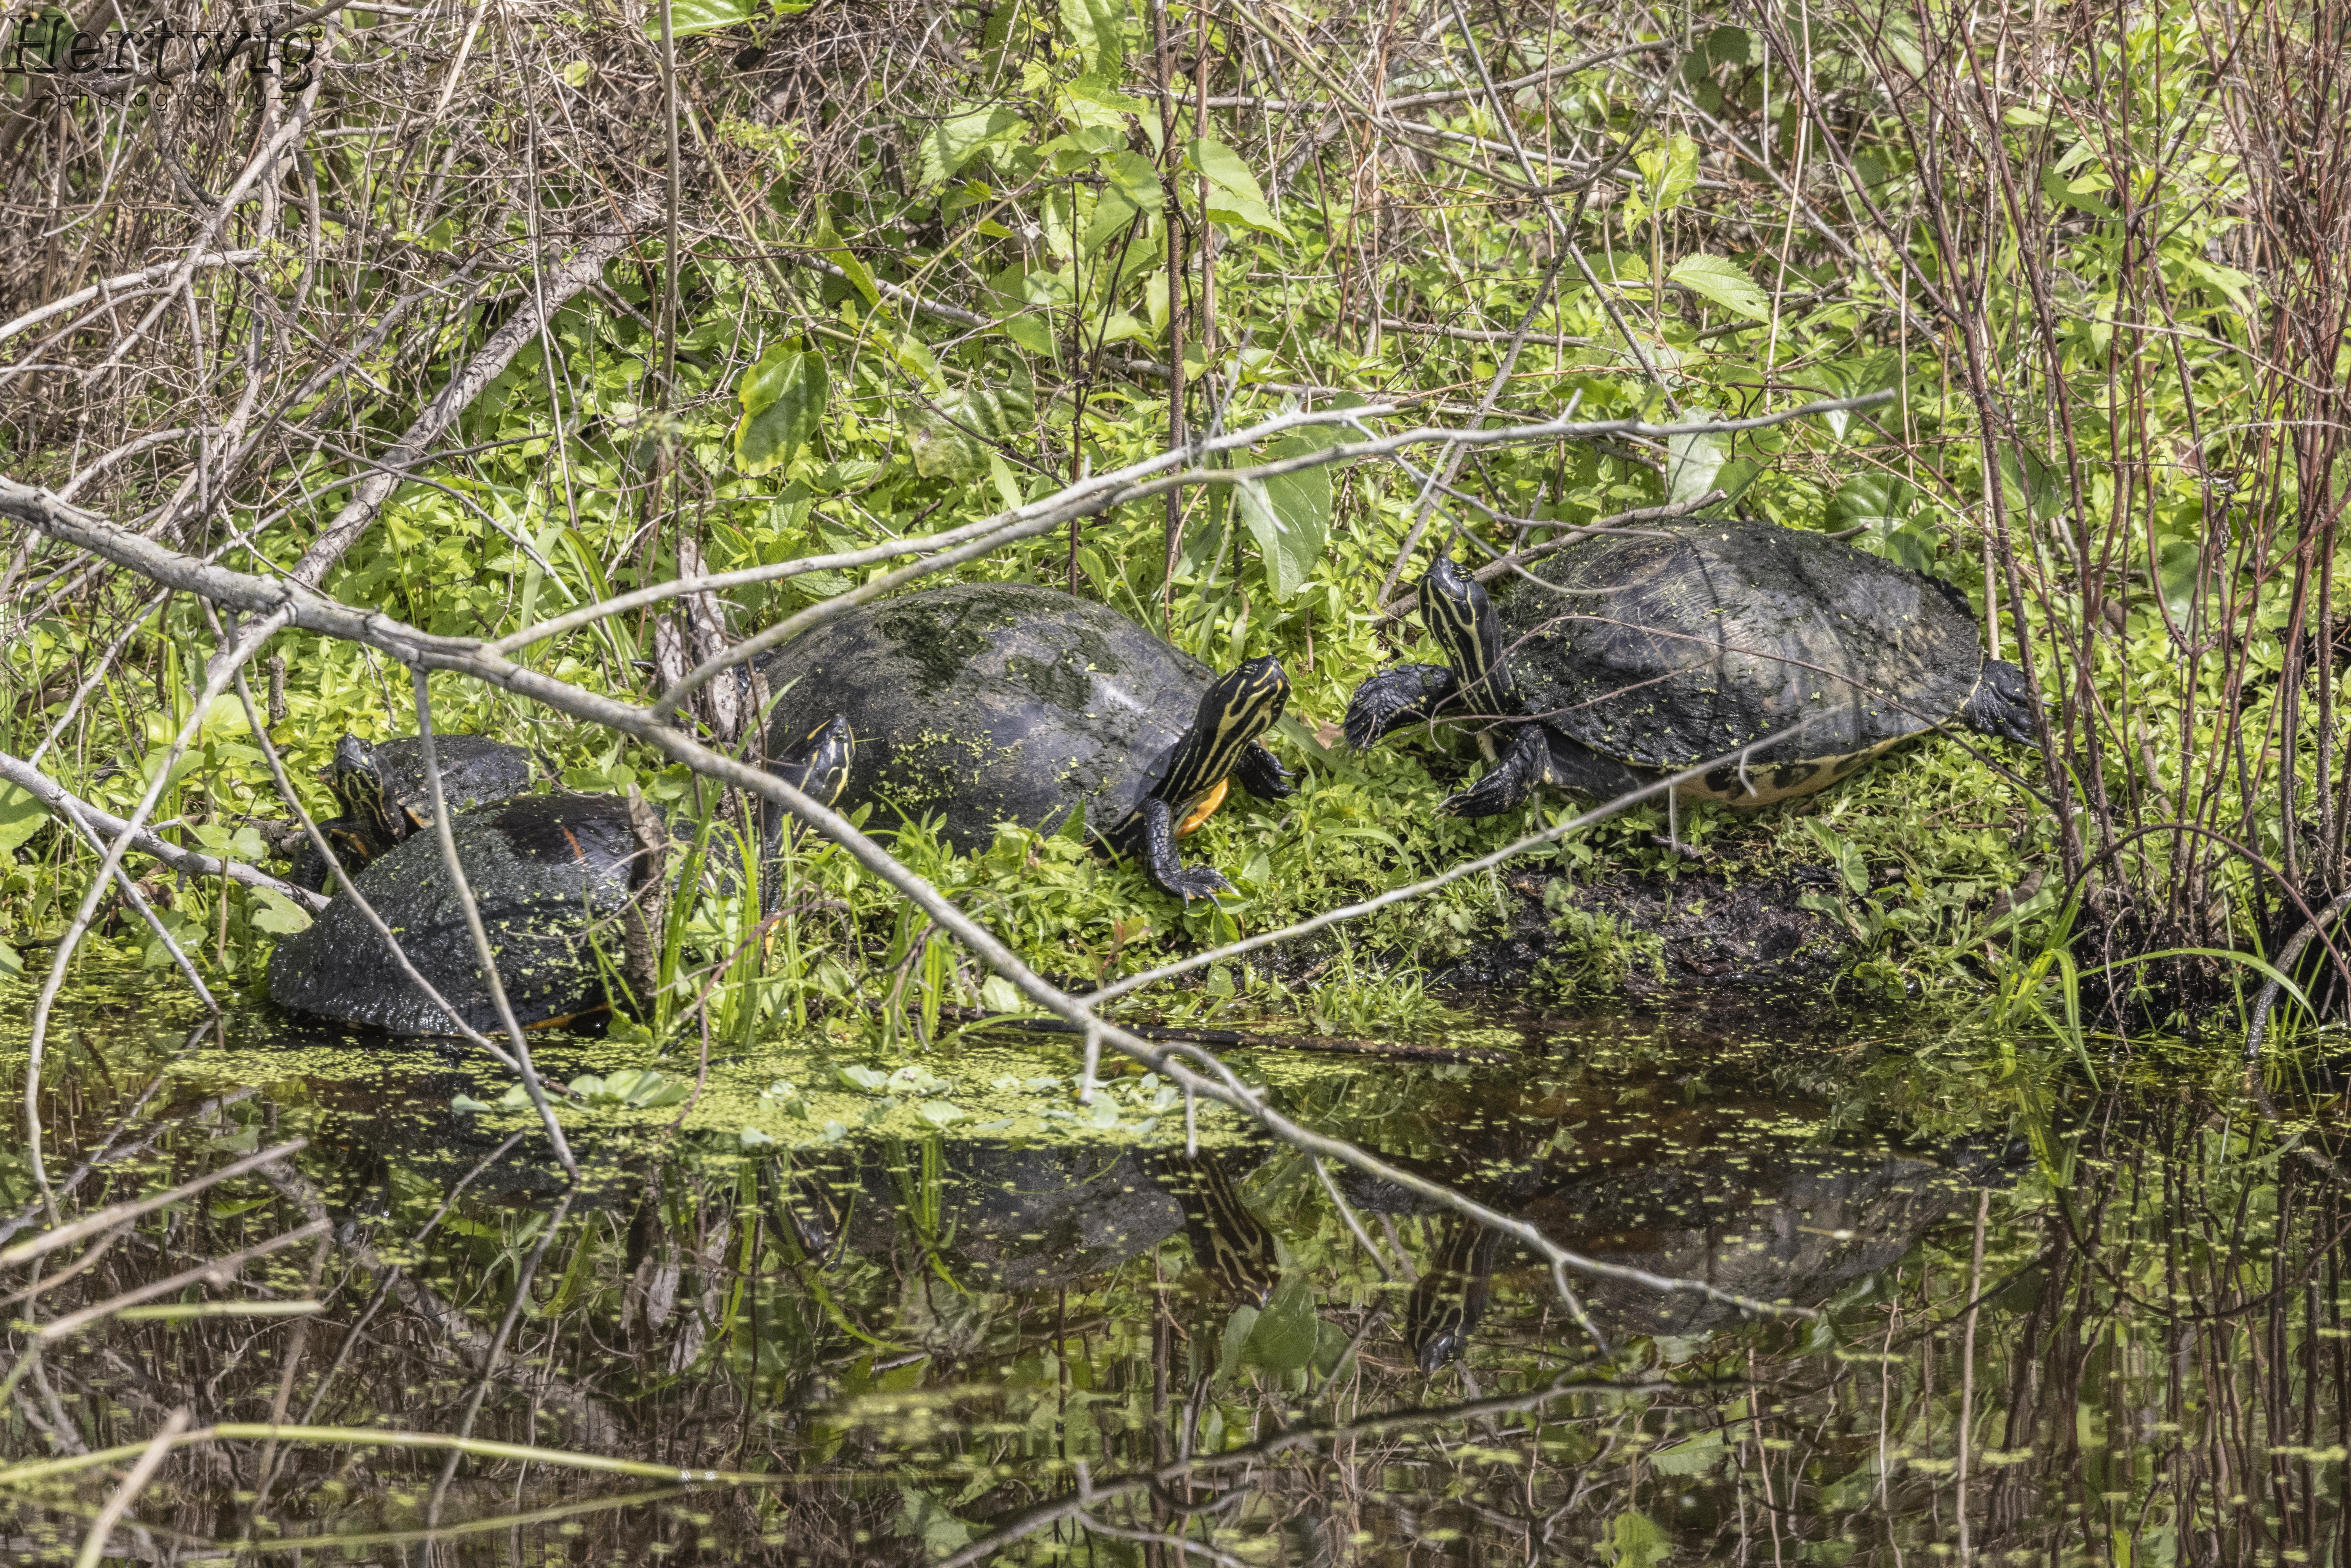 Turtles on The Bank